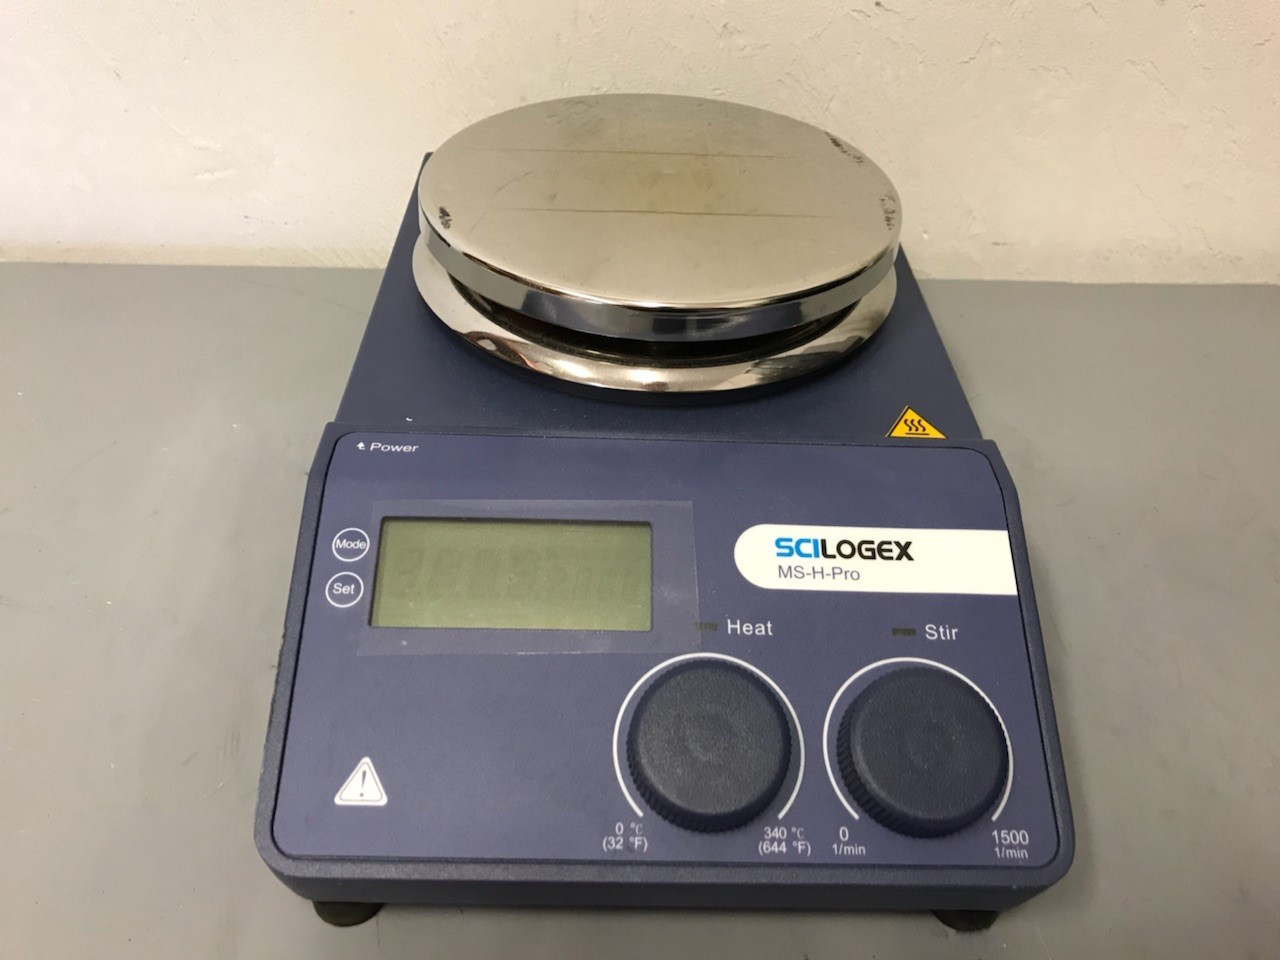 SciLogex MS-H-Pro Hot Plate/Stirring Hot Plate